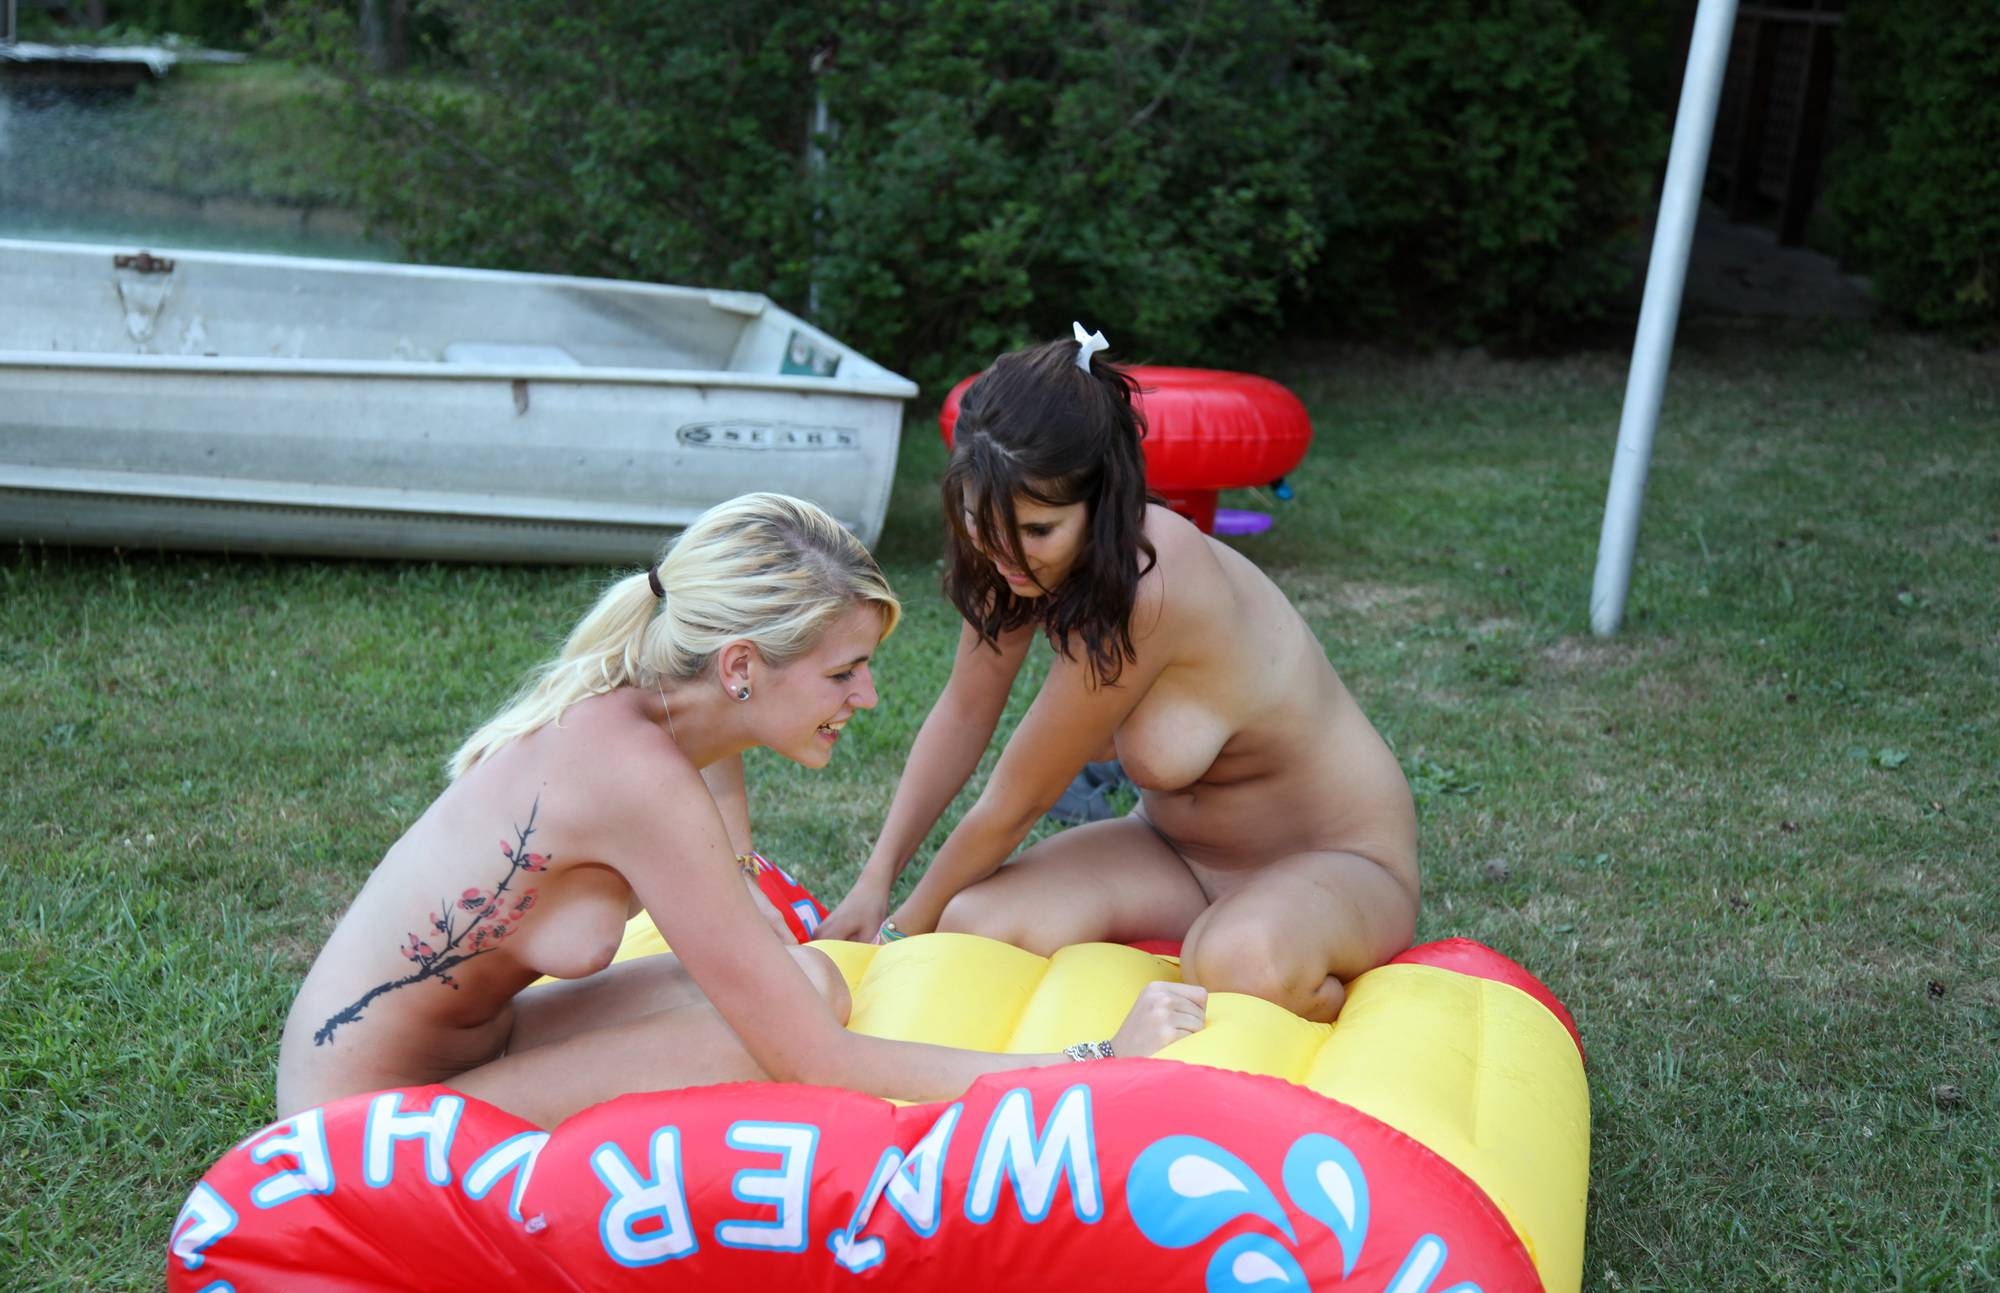 Purenudism Images-Deflating The Inflatables - 1